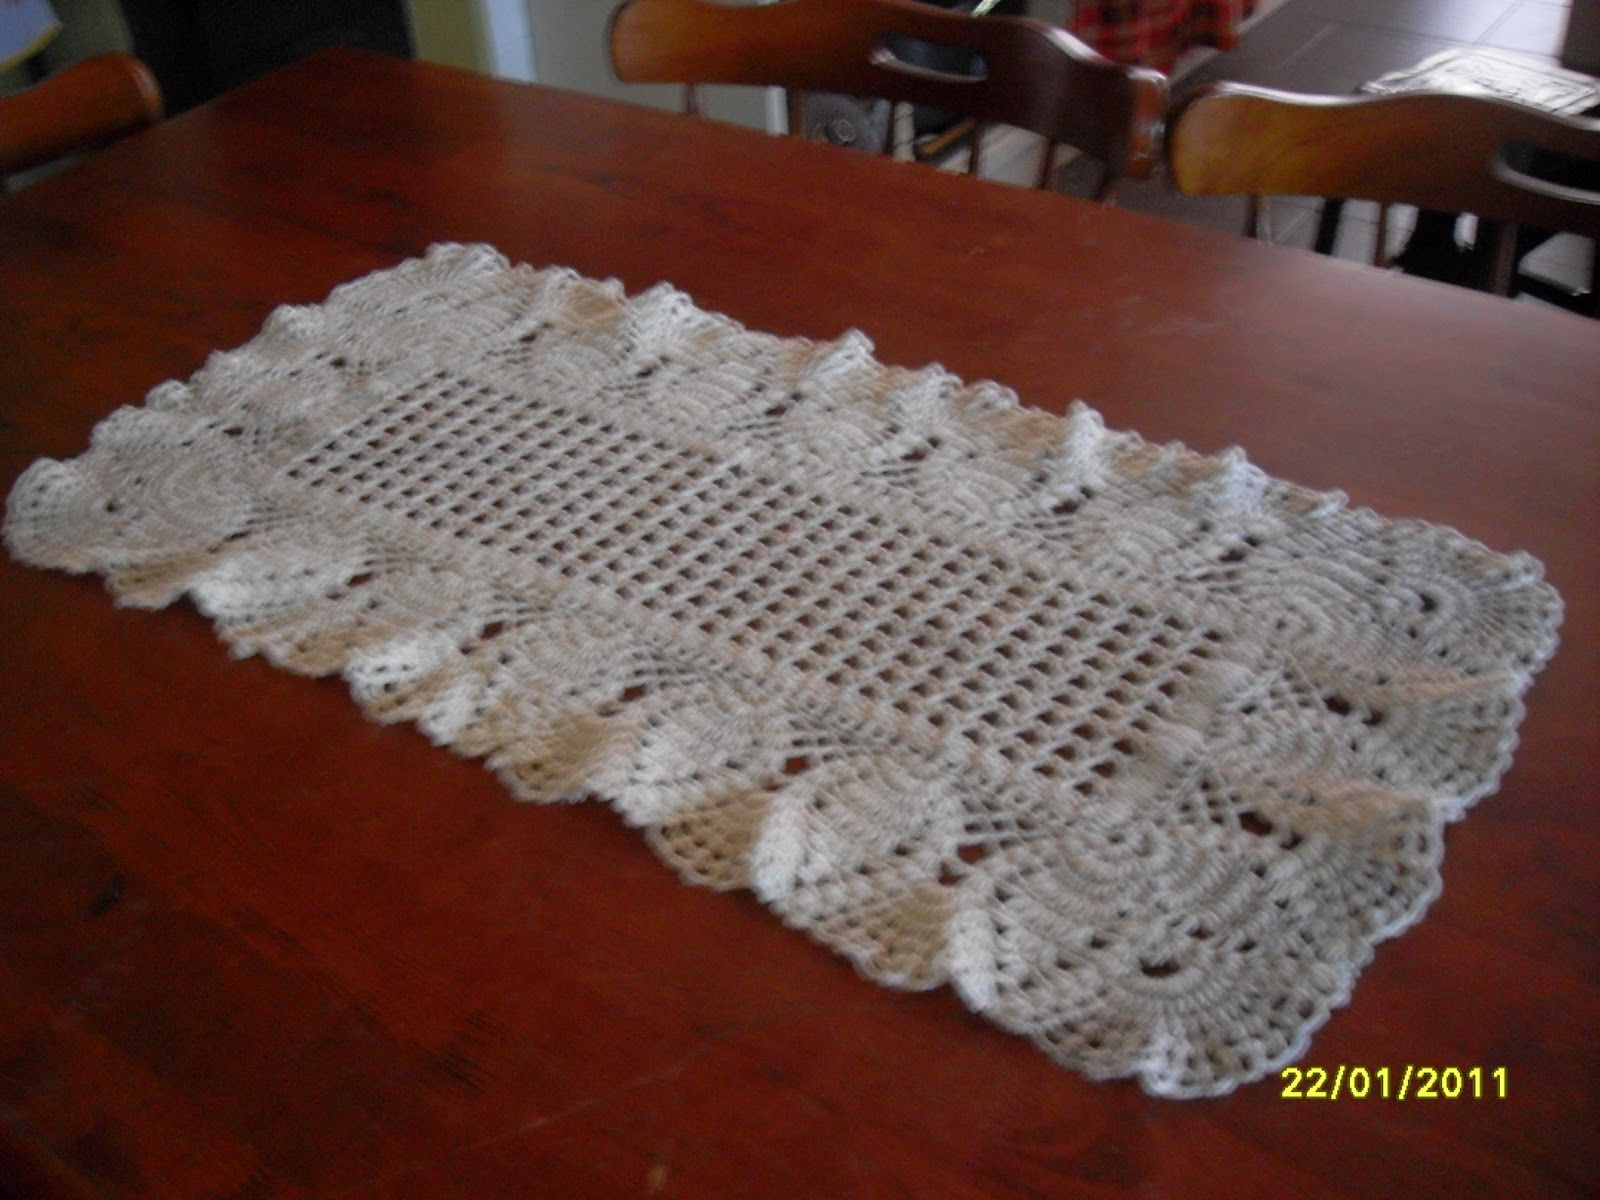 Crochet Table Runner Patterns Easy Interesting Inspiration Design